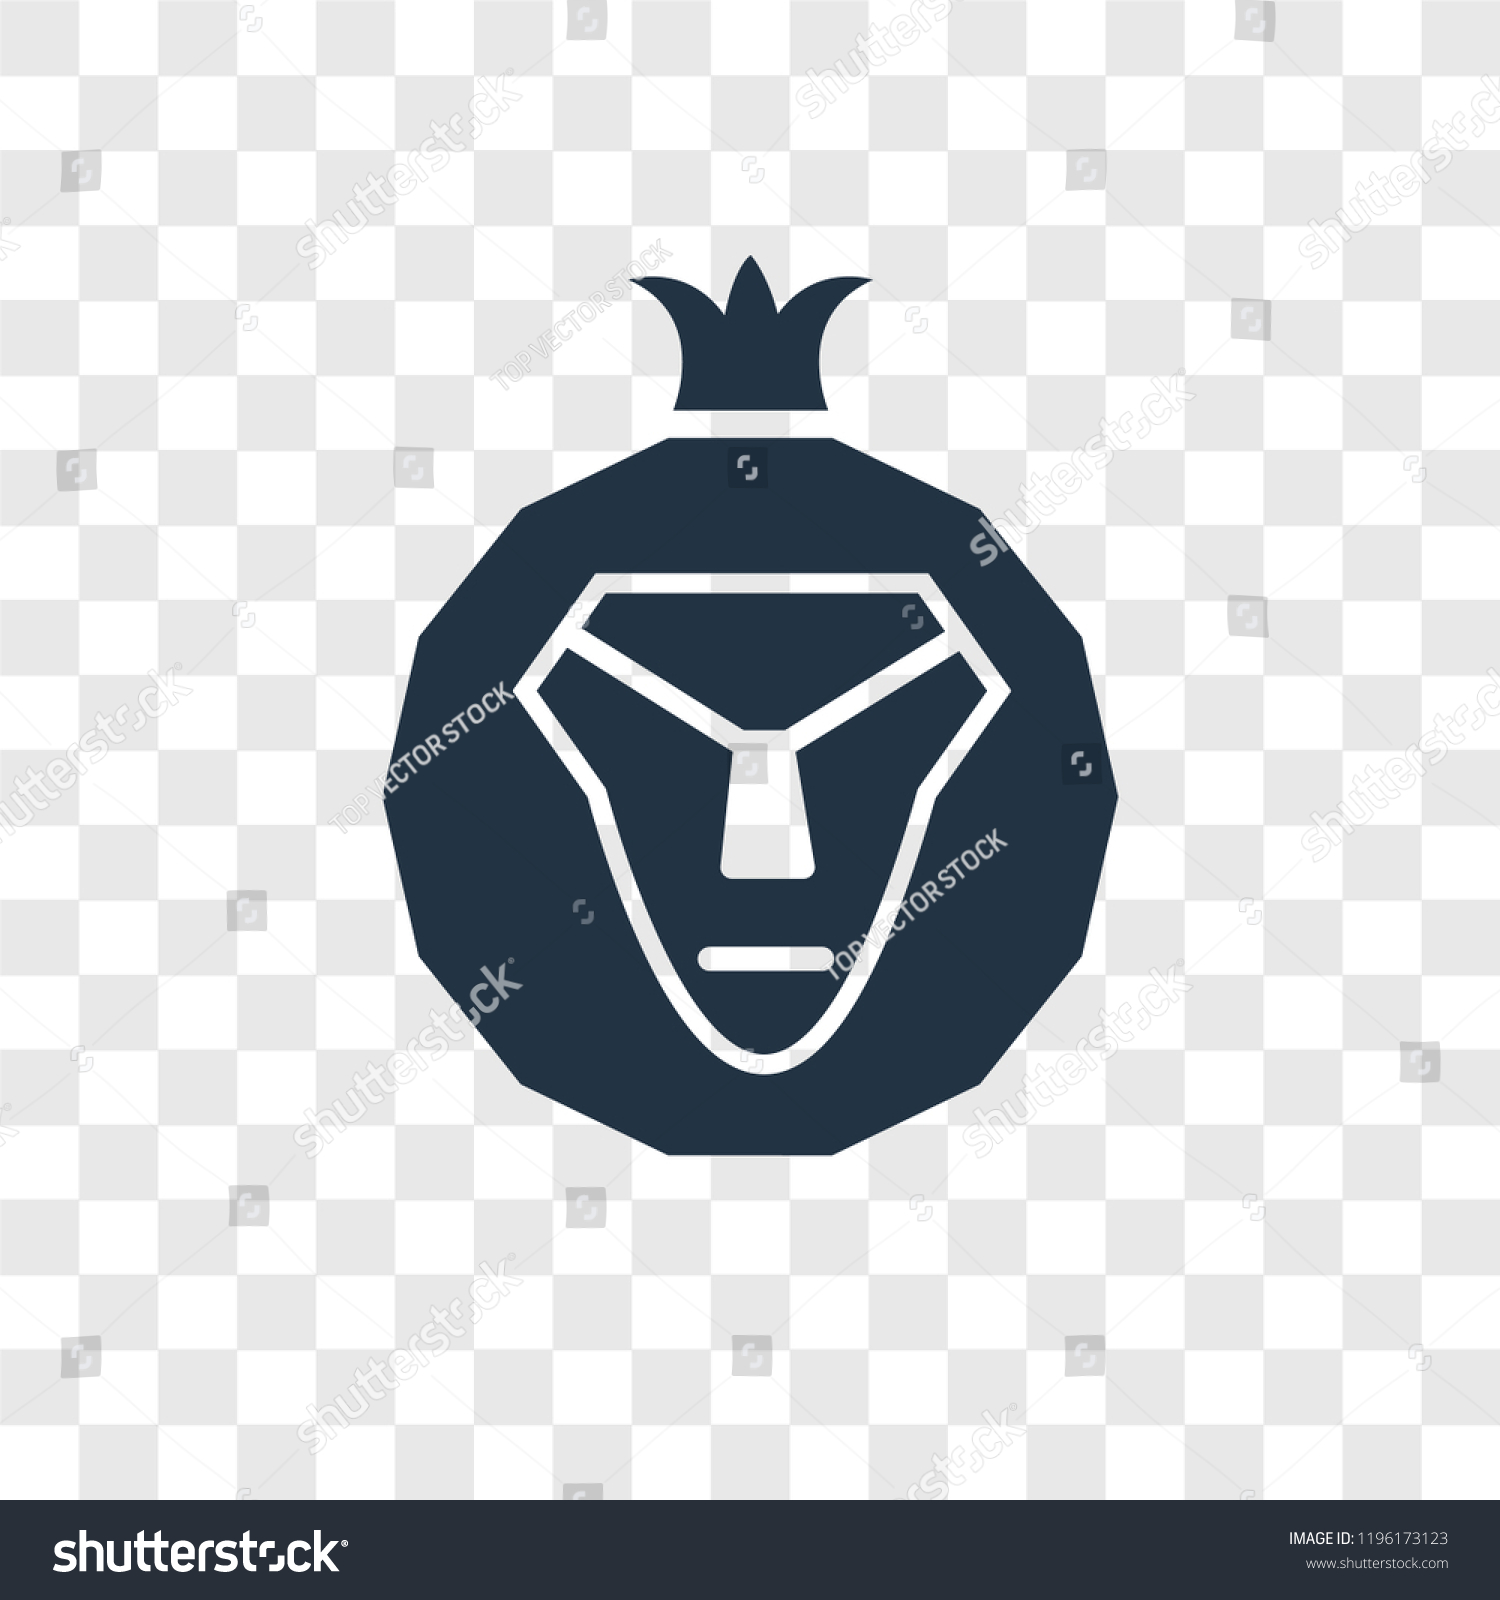 Lion of judah vector icon isolated on transparent background lion of judah transparency logo concept